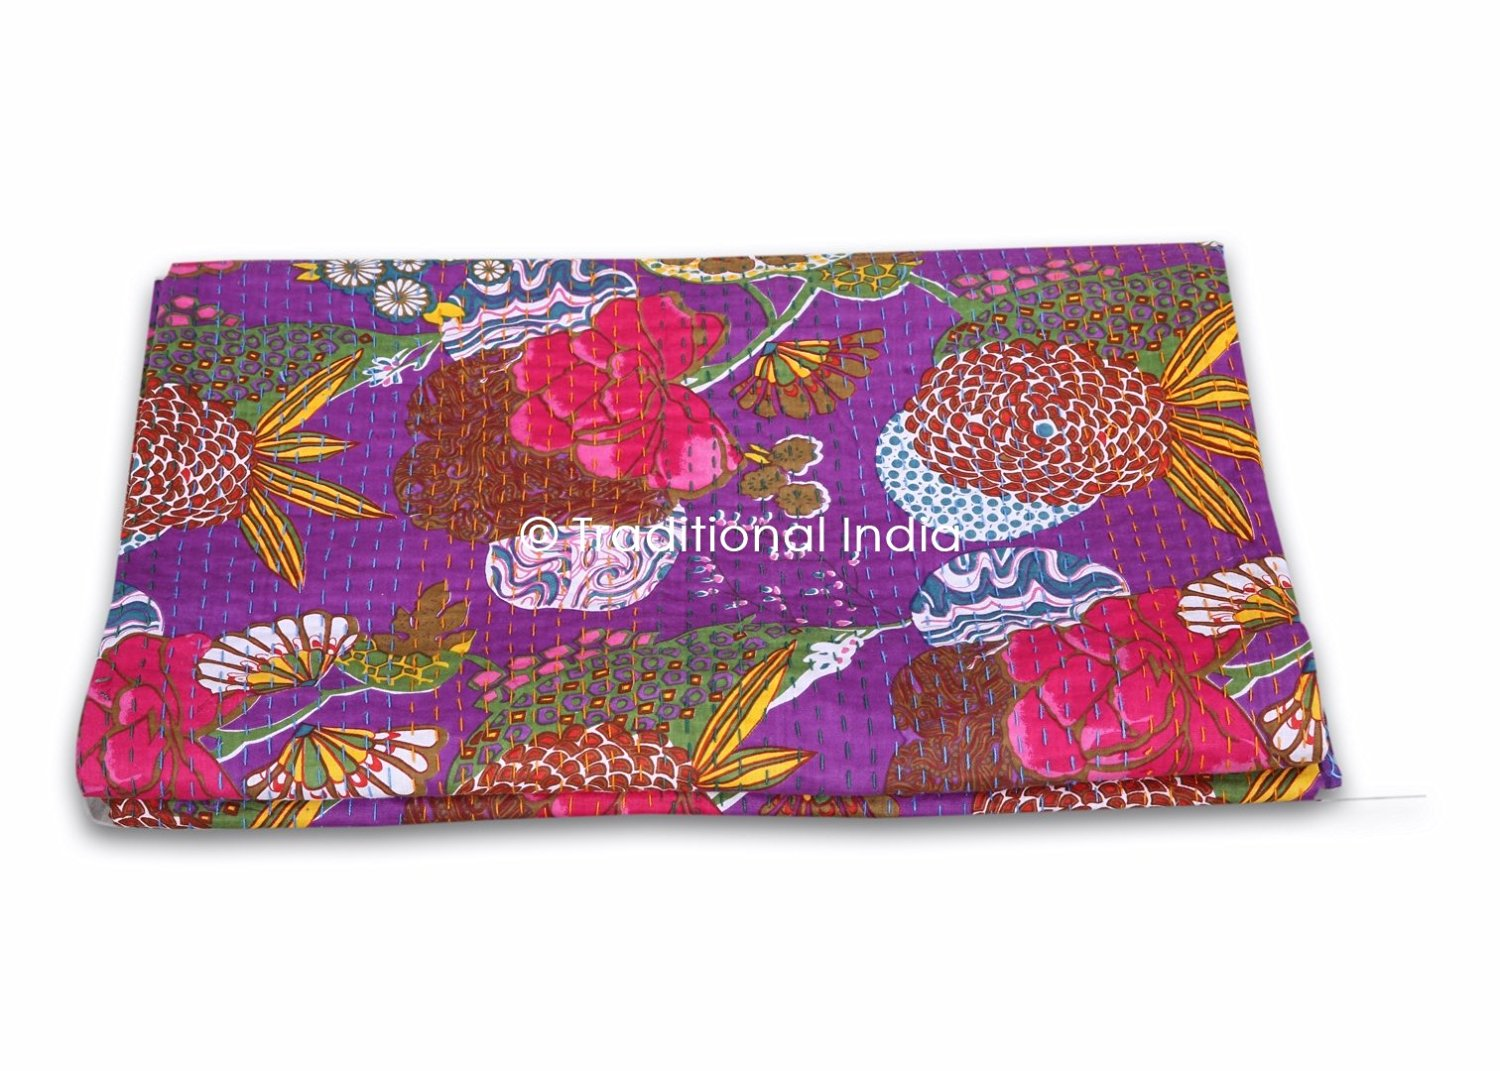 Indian`handmade Kantha Quilt Vintage Queen Size Bedspread Throw Cotton Quilts, Bedspreads & Coverlets Bedding Blanket